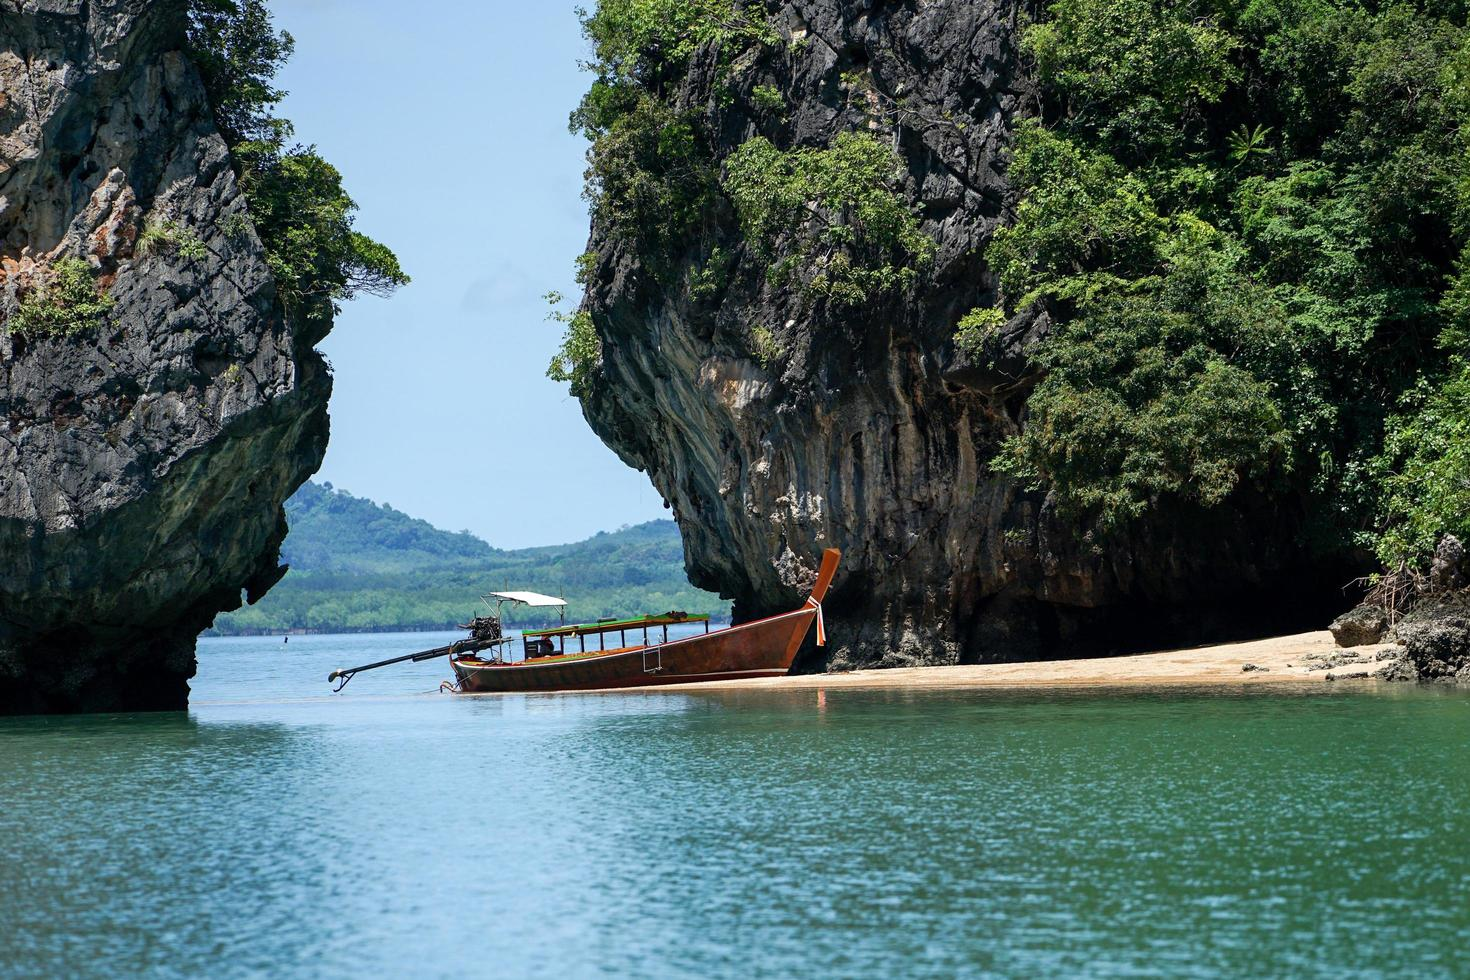 Traditional long-tail boat parks on the beach with high cliff and seascape in background photo